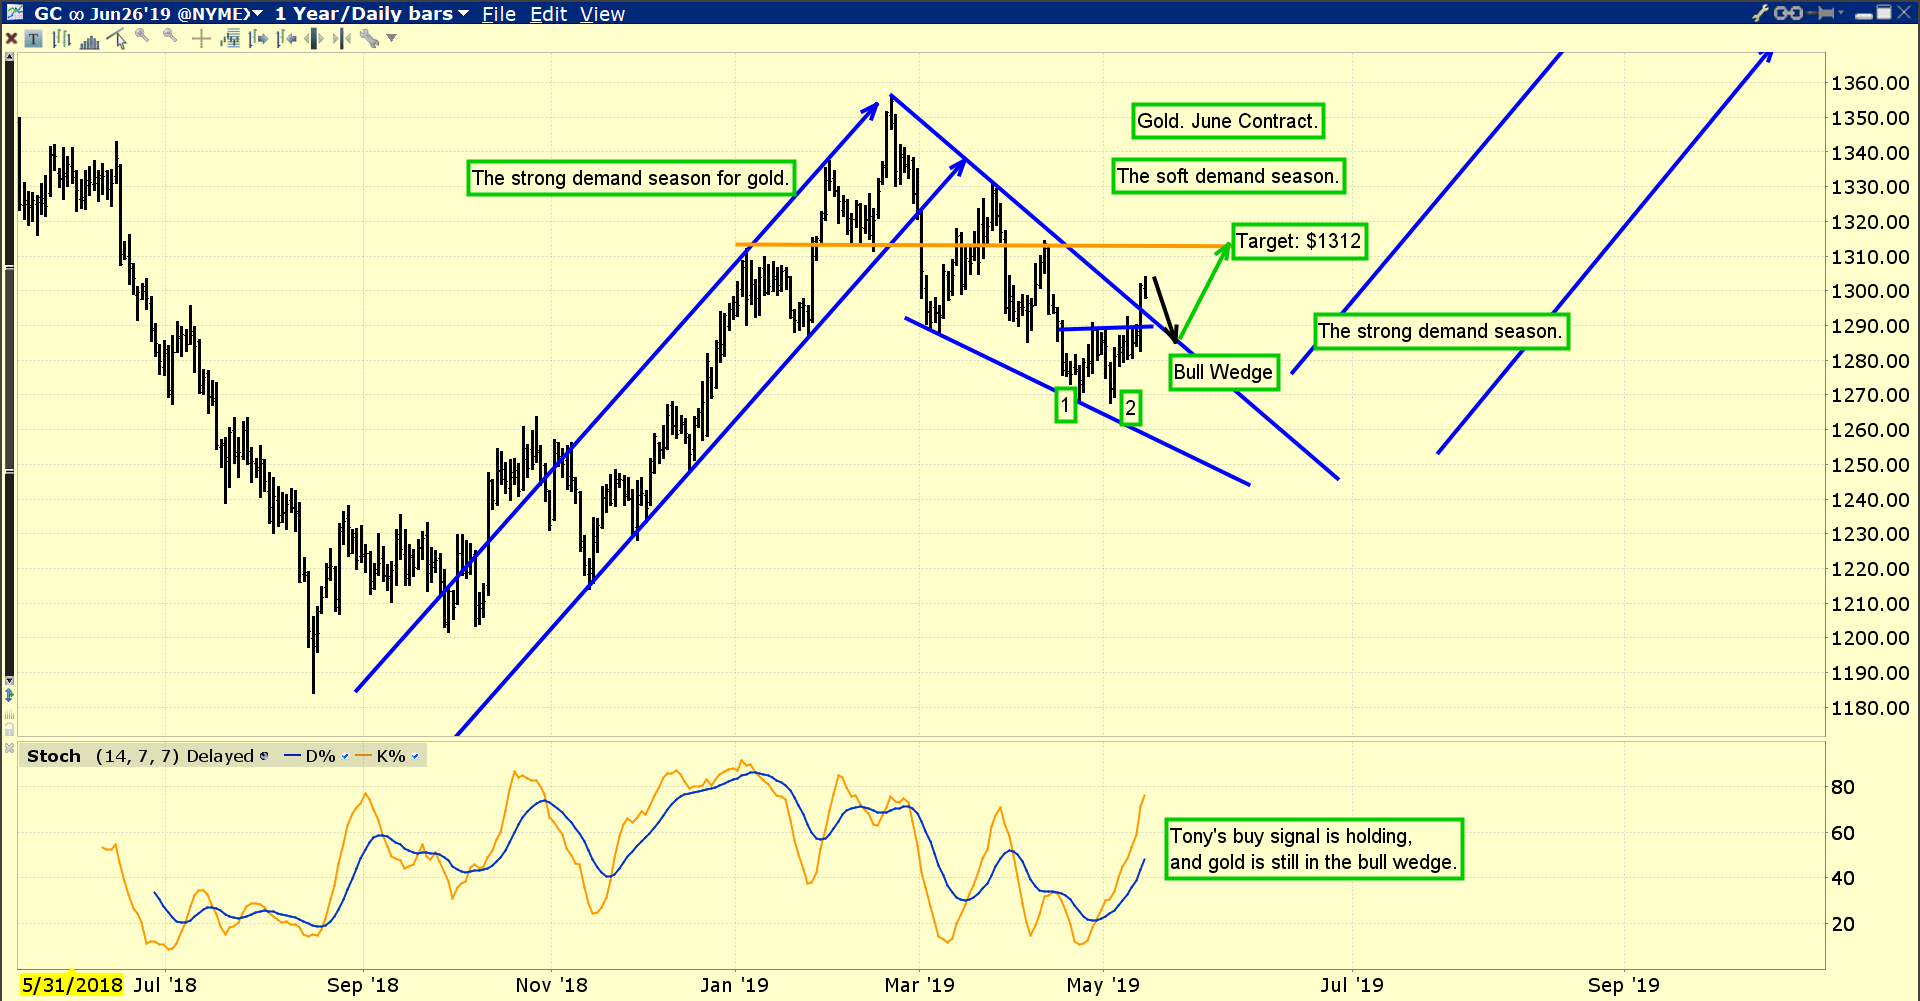 hight resolution of the bull wedge breakout is impressive but until the dollar collapses against the yen i would not get overly excited about gold s immediate prospects for